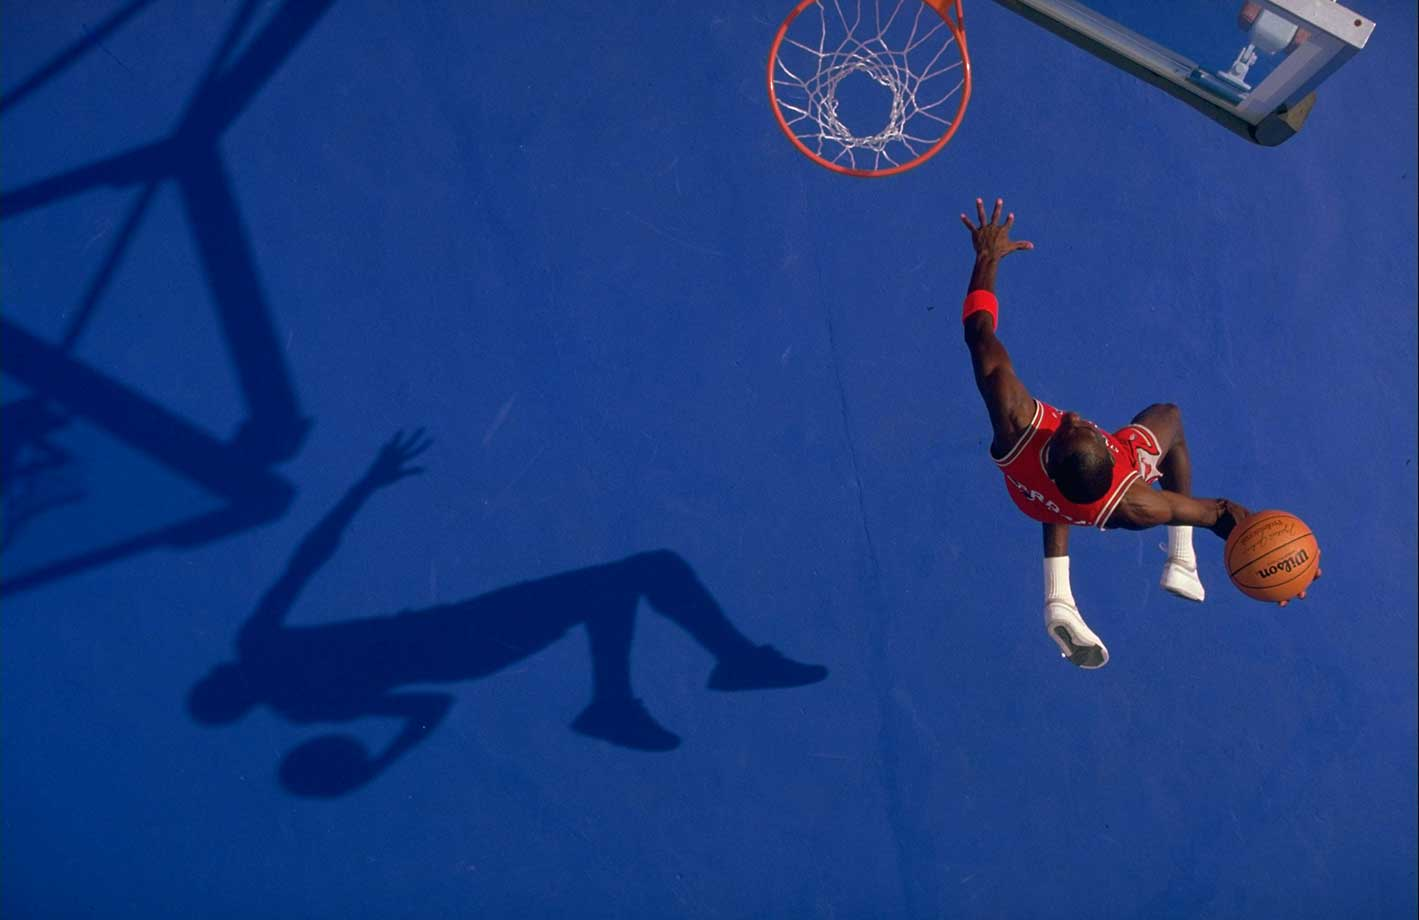 Michael Jordan flies to the rim for a dunk in this 1987 action portrait.